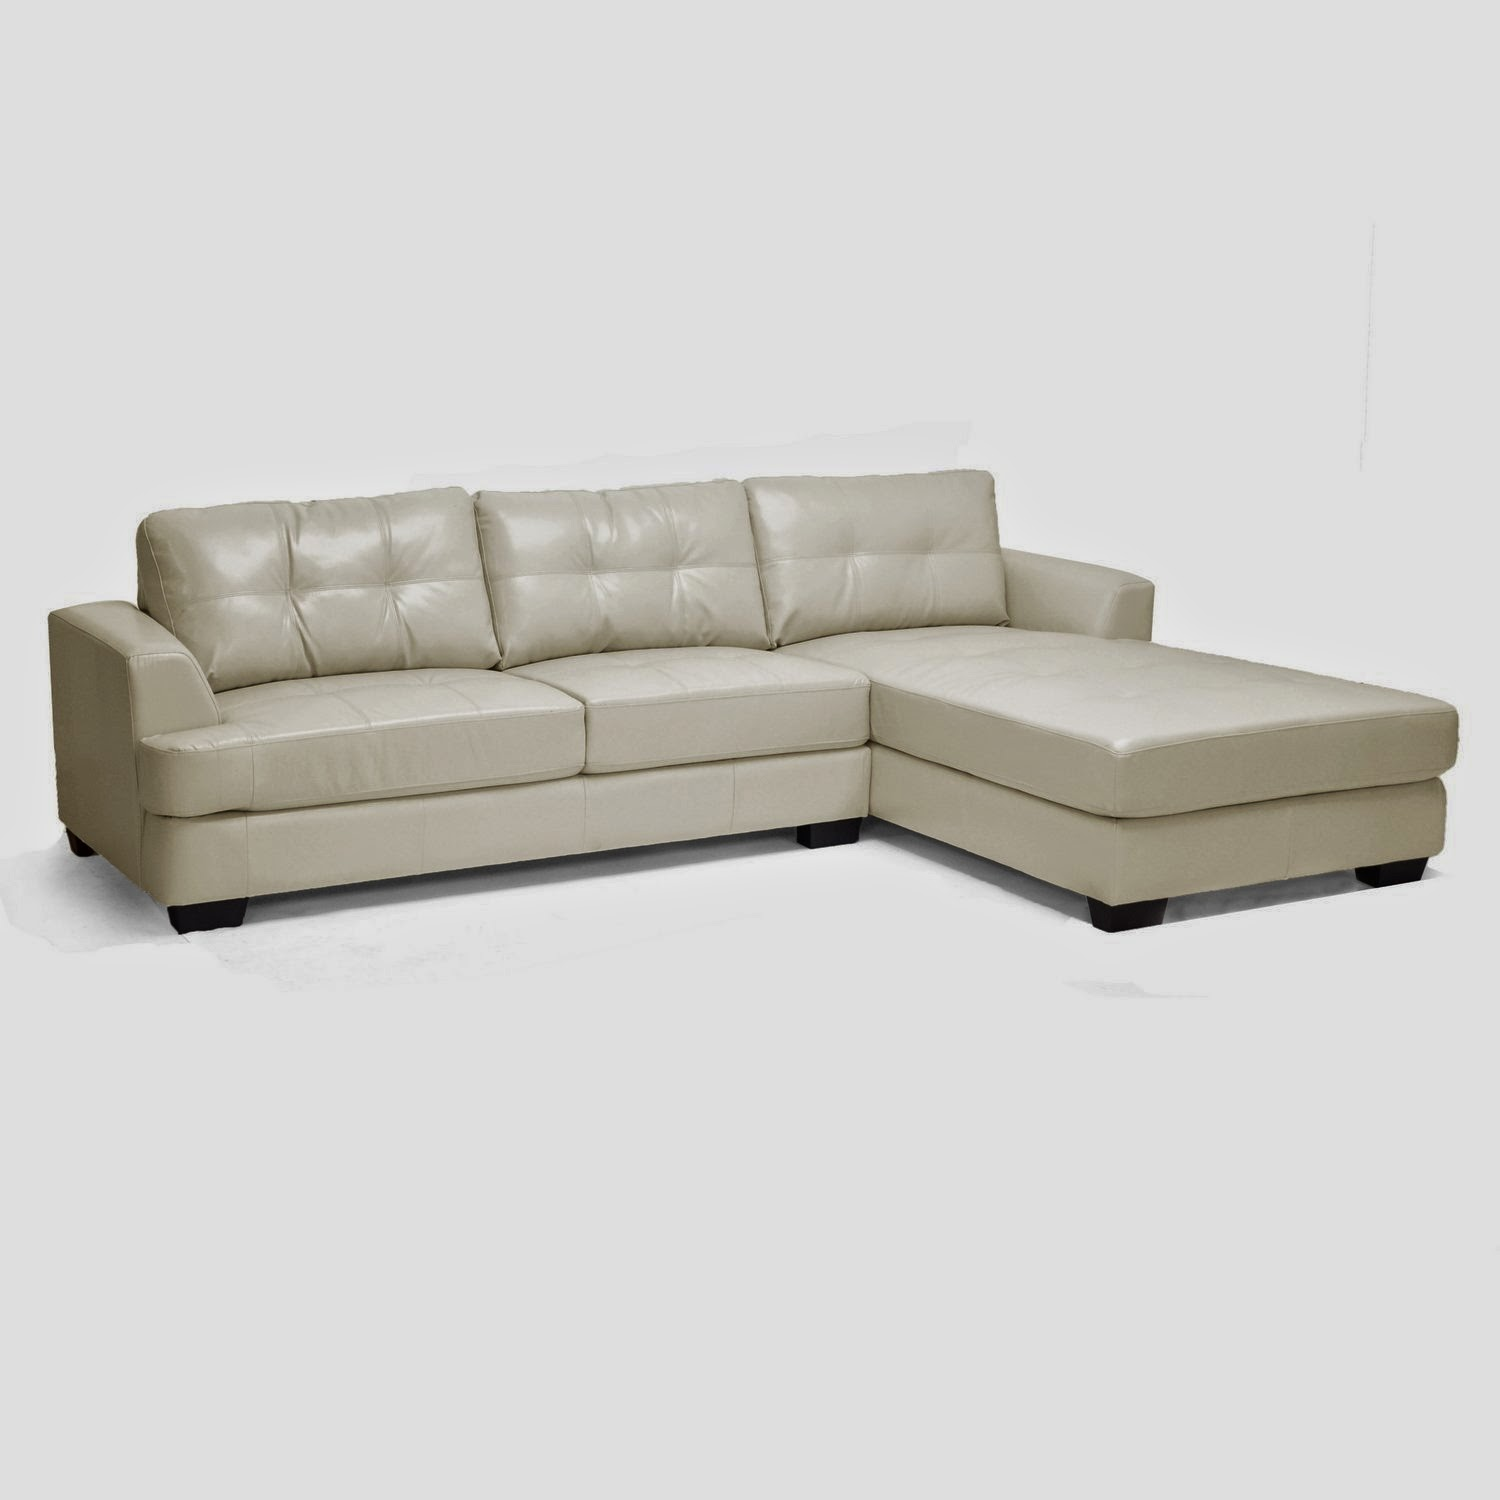 Couch with chaise leather couch with chaise lounge for Chaise bed sofa